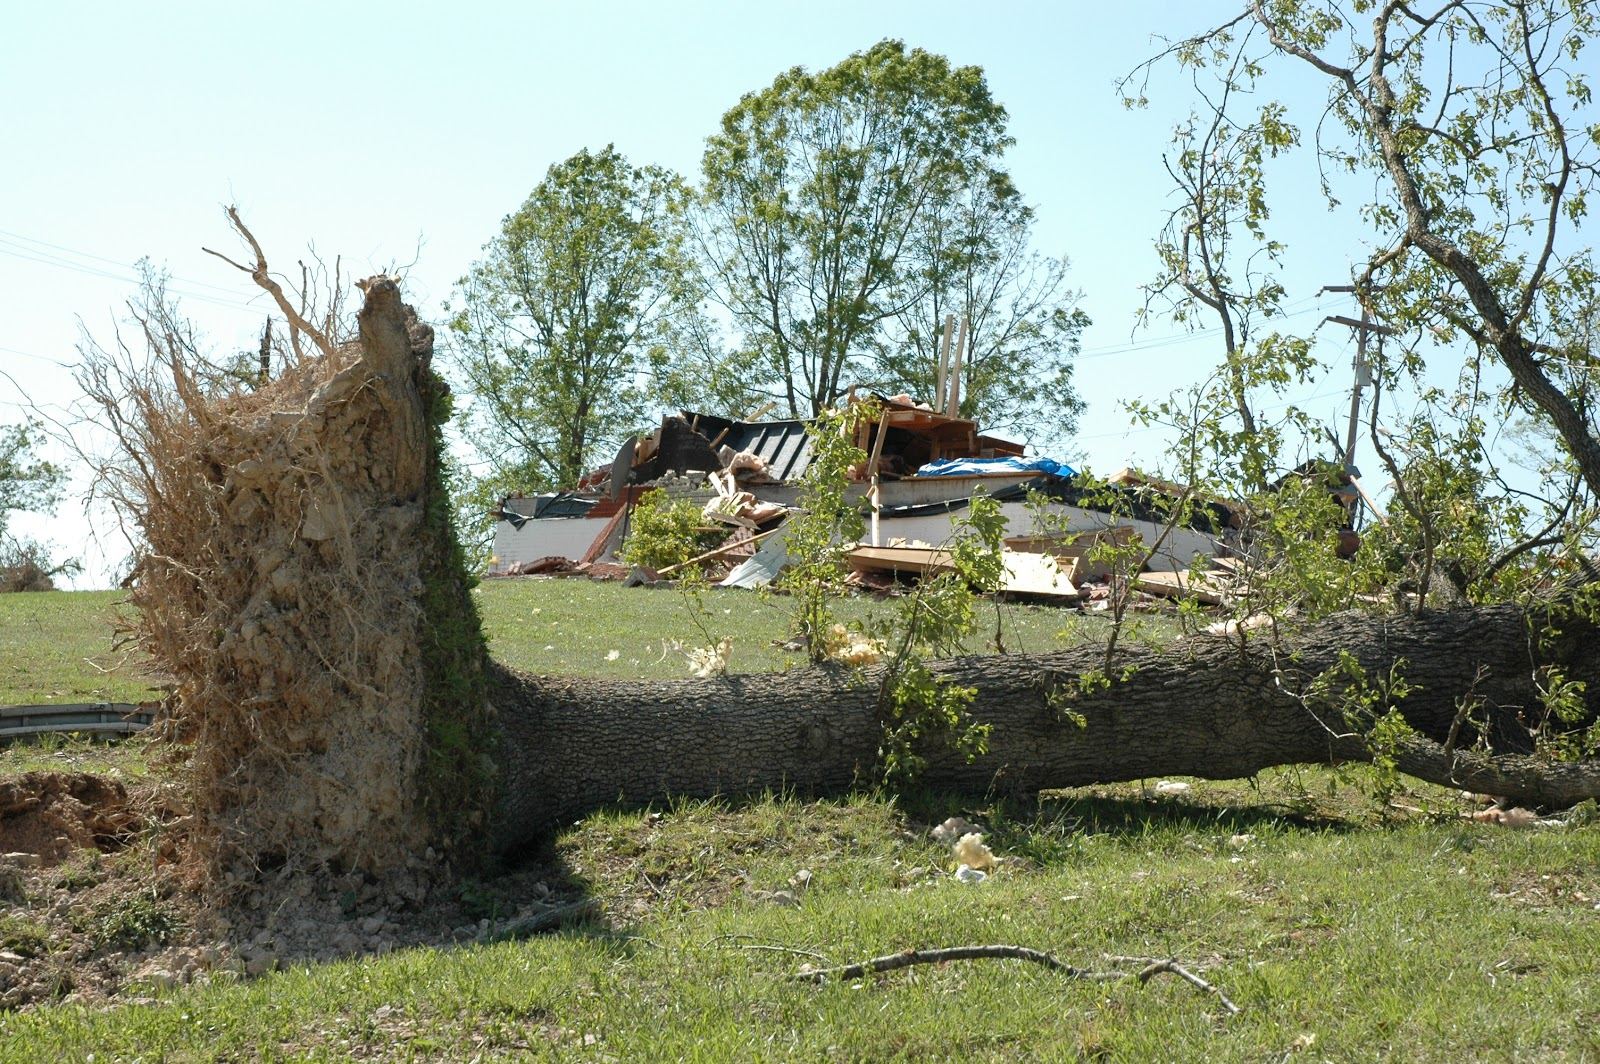 FEMA_-_35153_-_A_blown_over_tree_in_Missouri.jpg